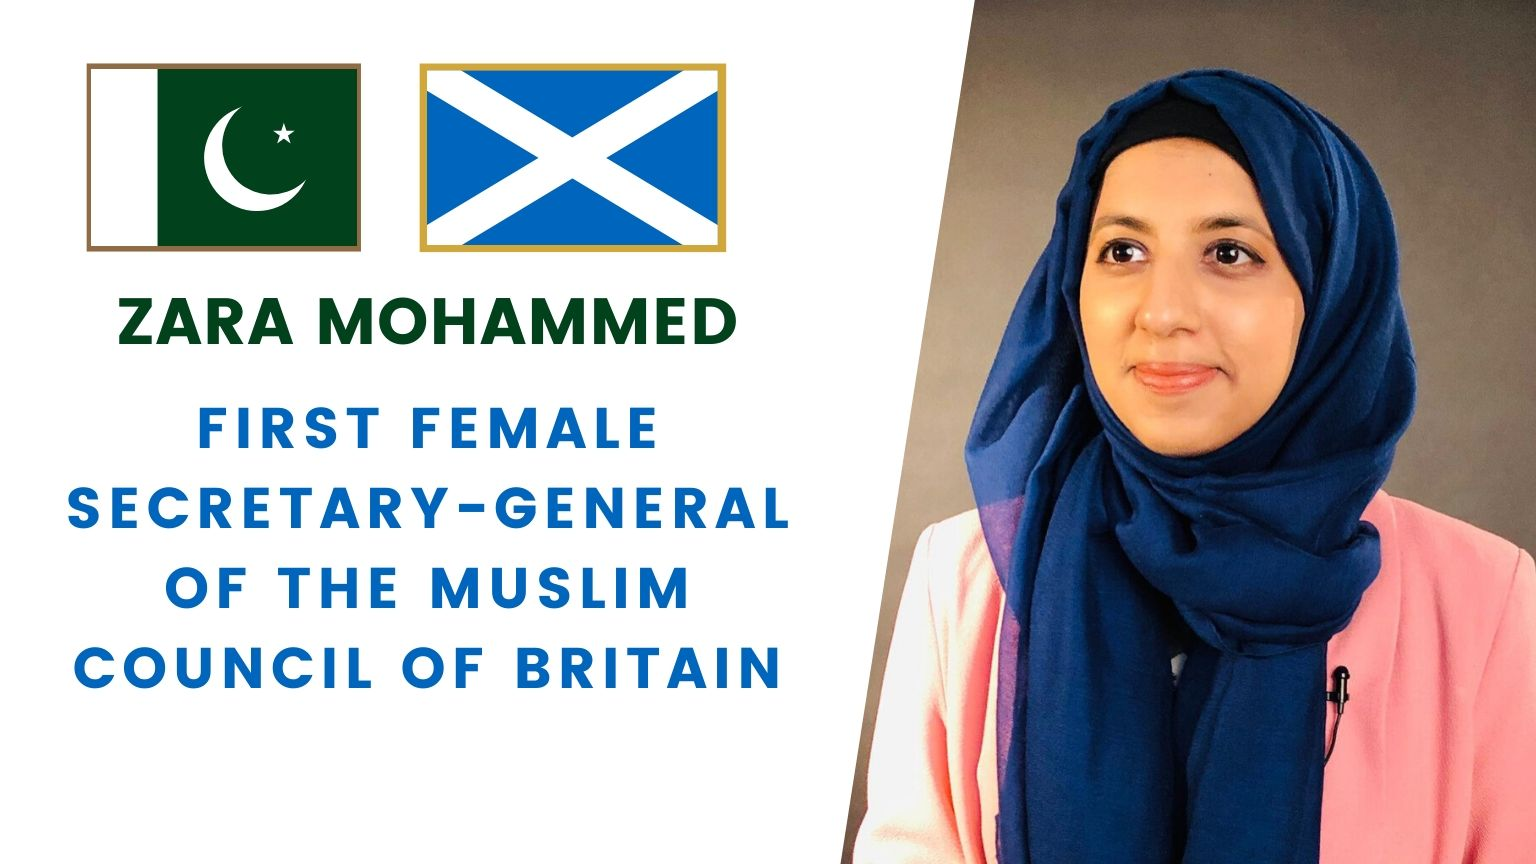 ZARA MOHAMMED | First Female Secretary-General of the Muslim Council of Britain